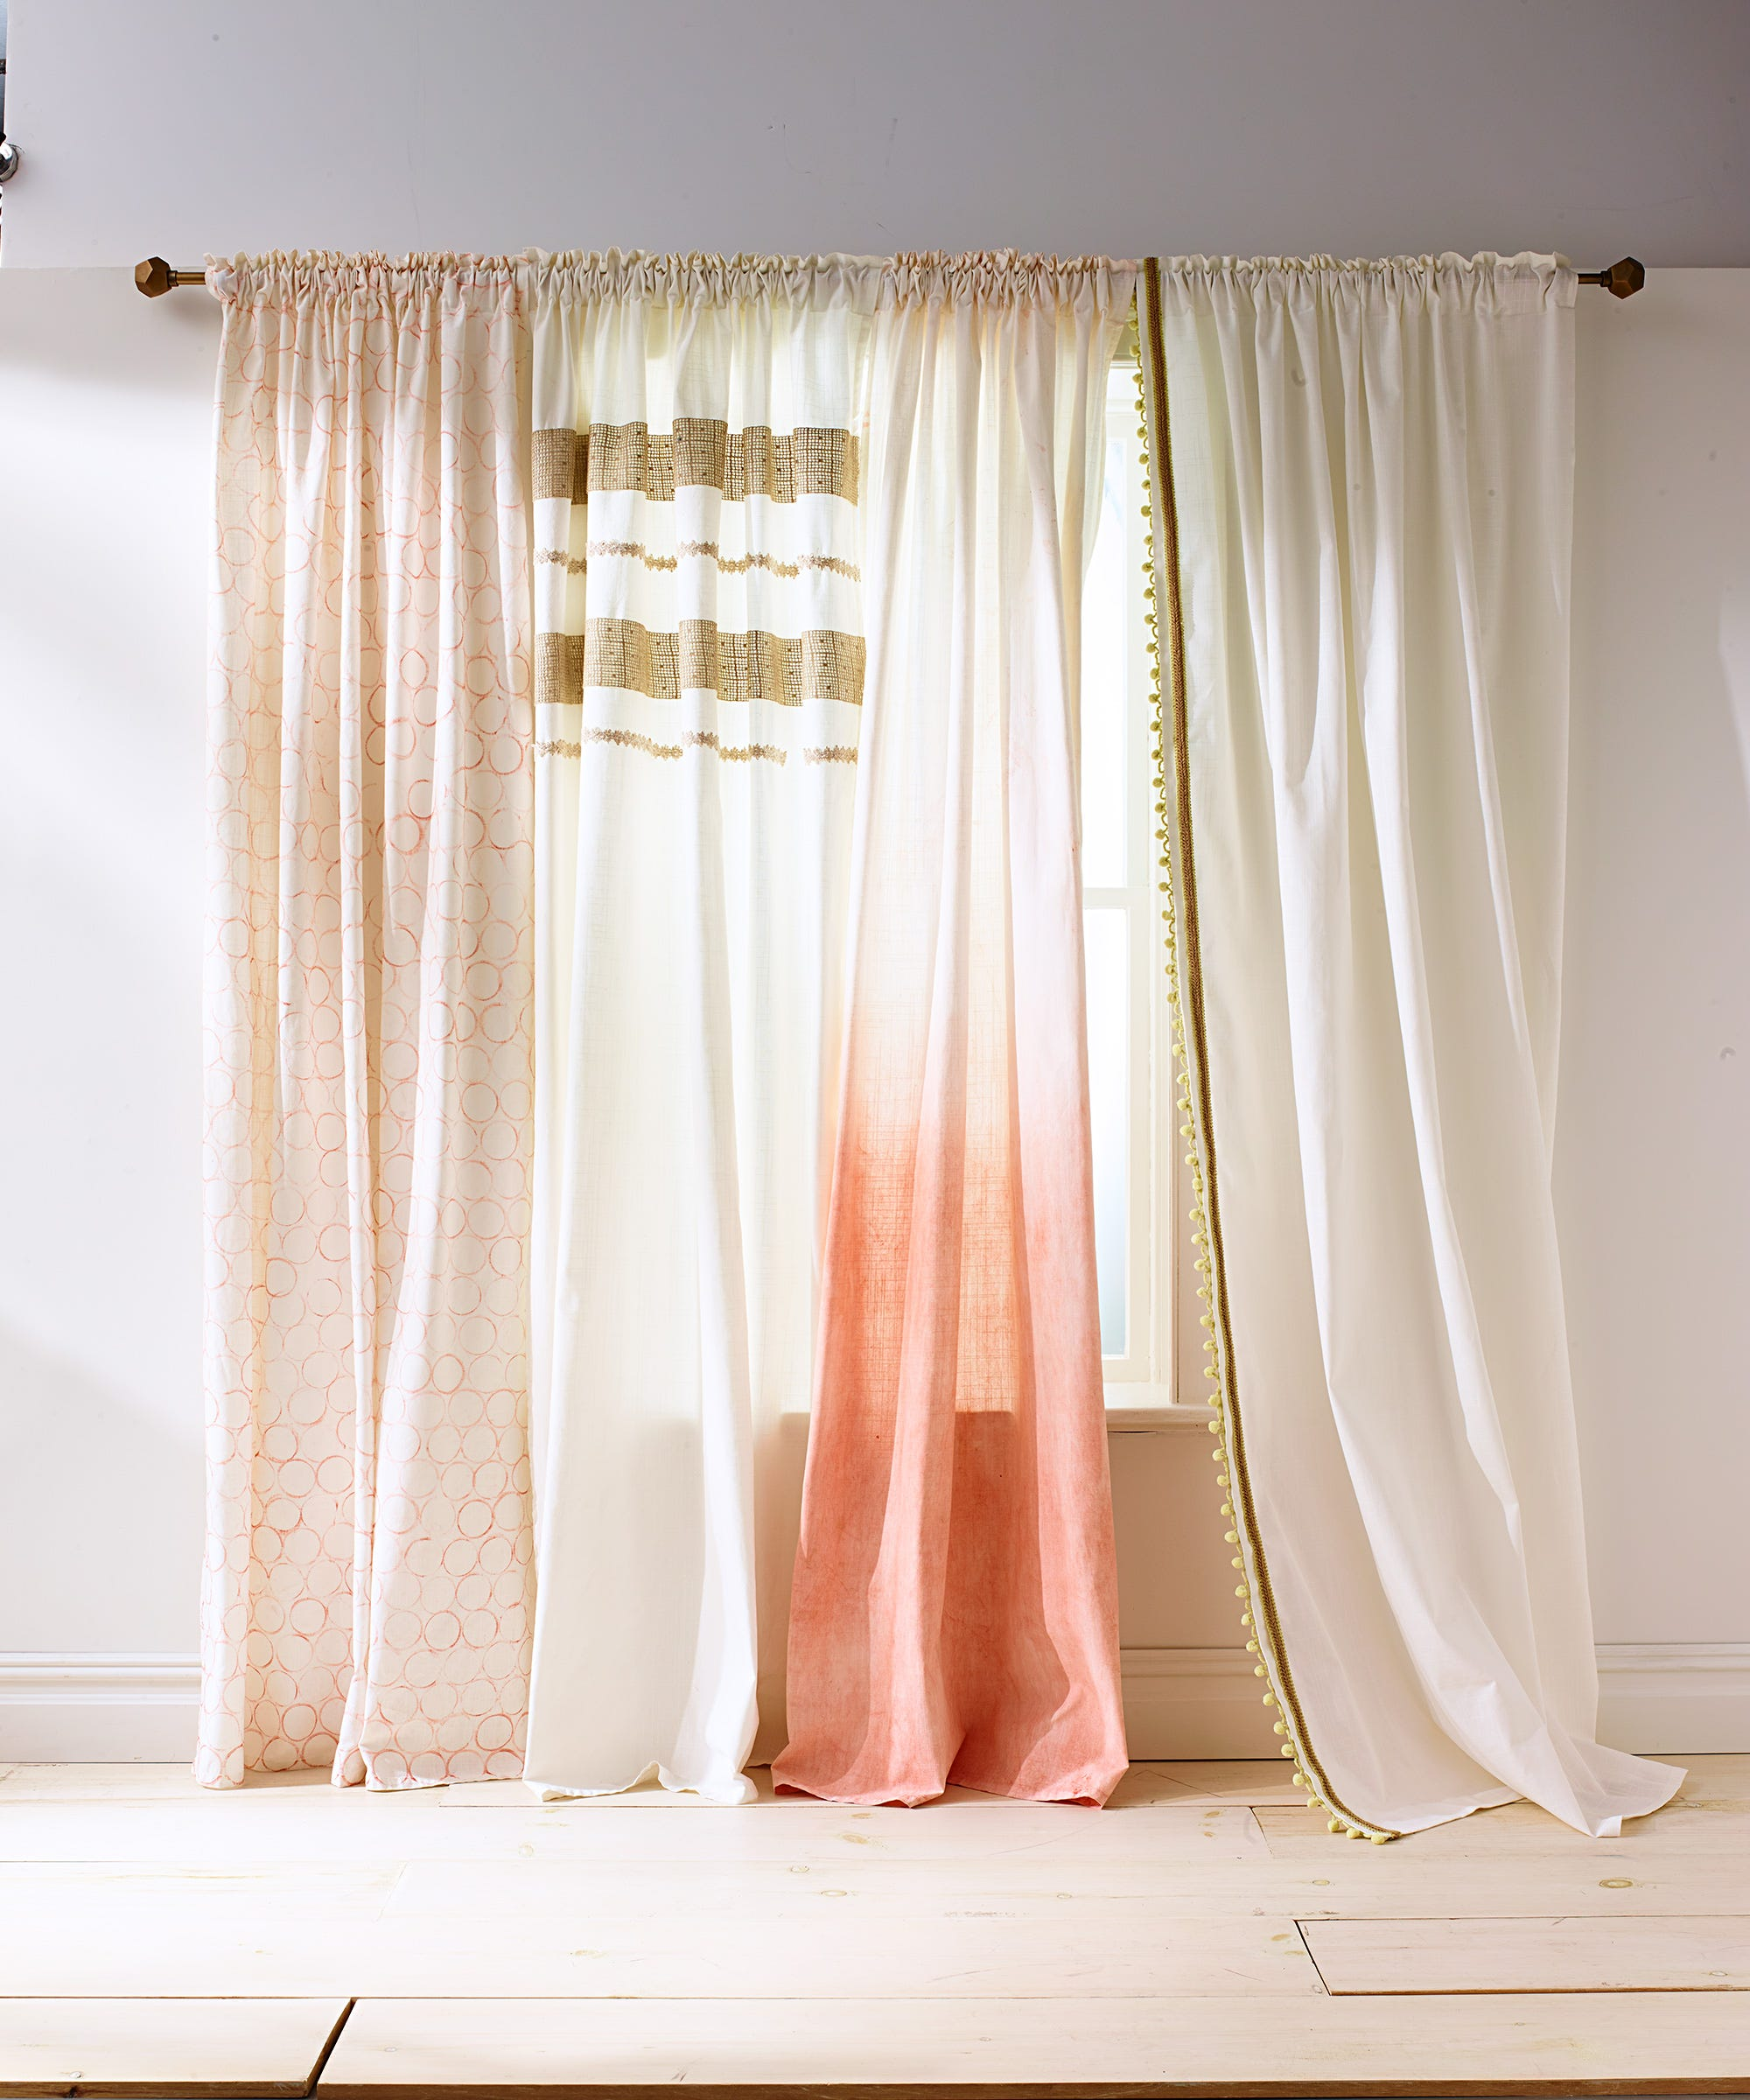 bedroom beekeeper finials rod proportions master rods delftware lady curtains reveal the curtain martha stewart x within